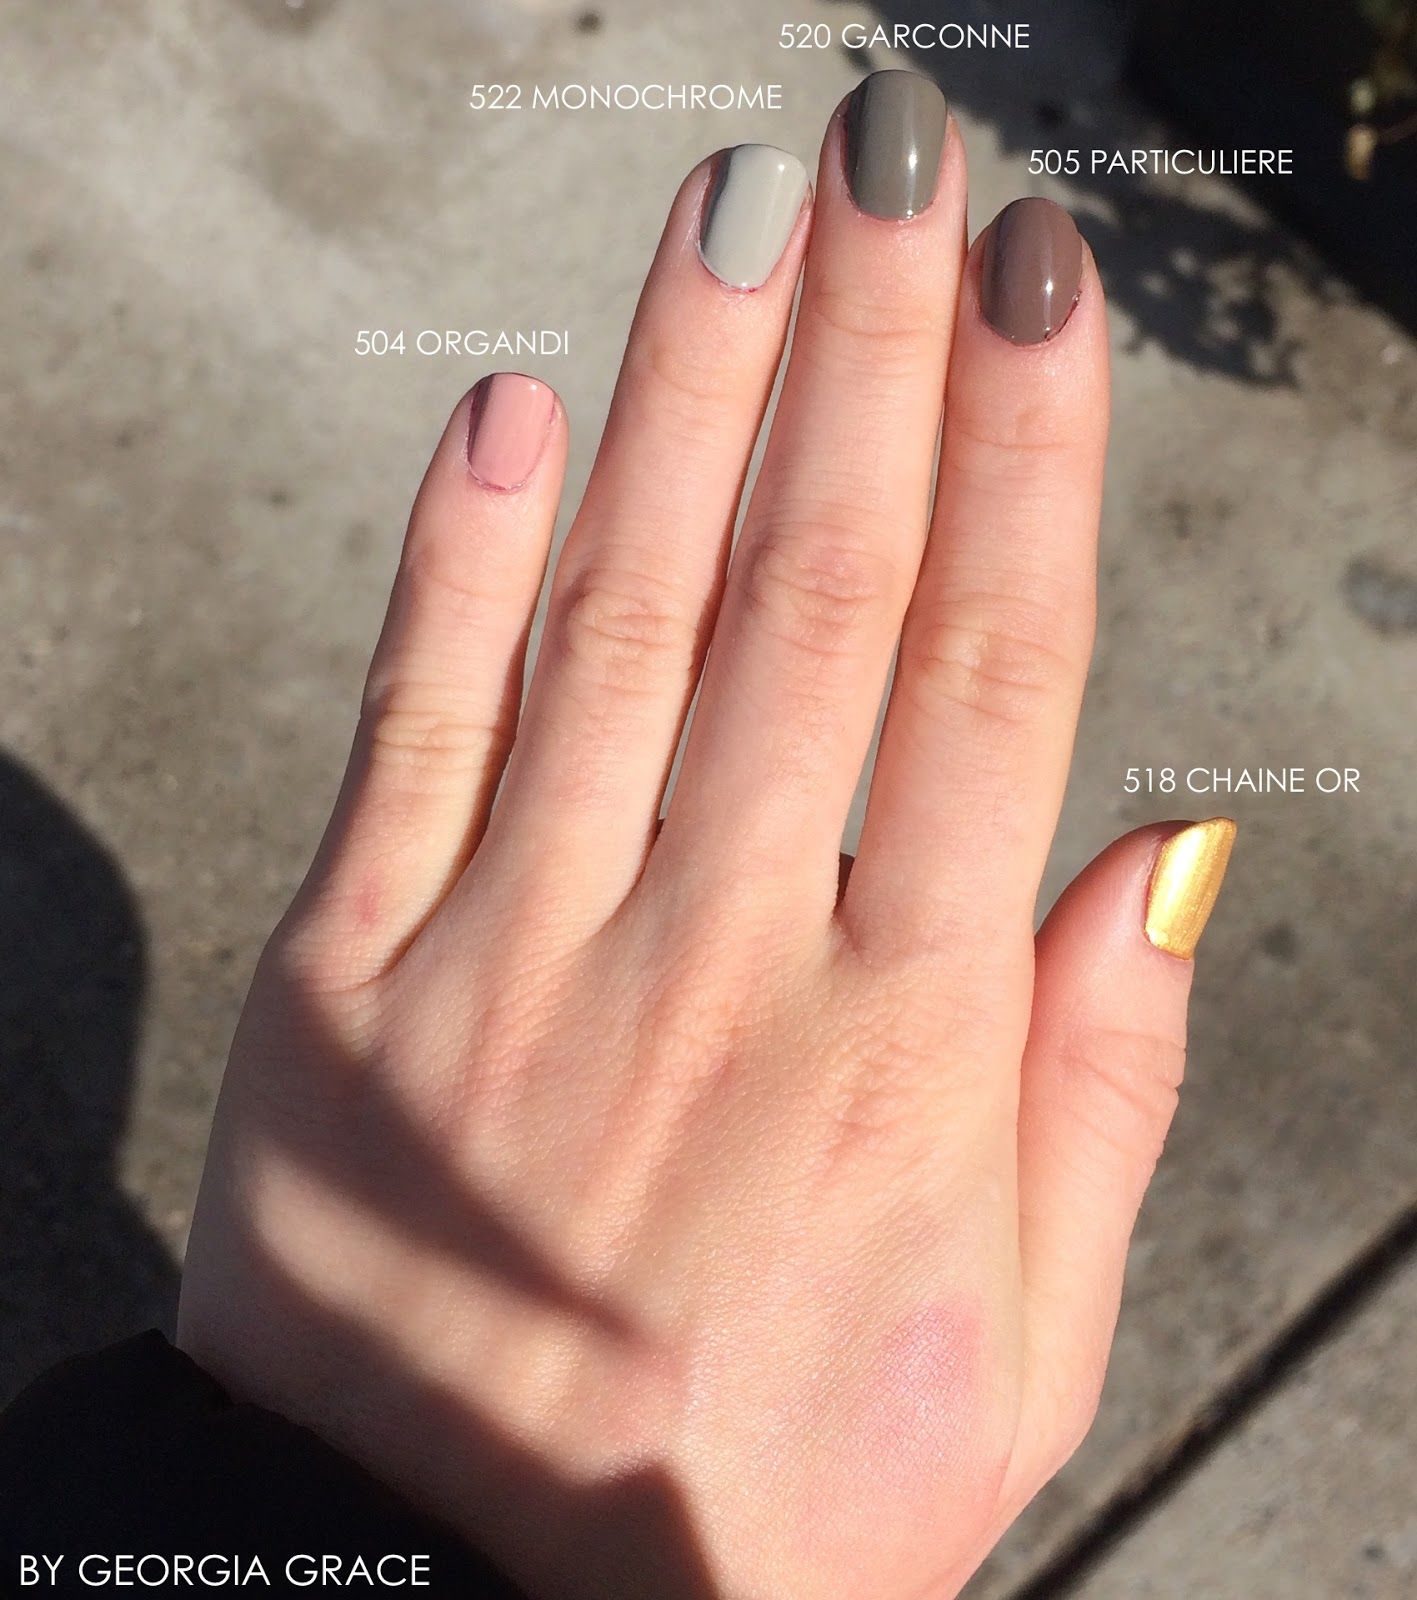 Chanel New Le Vernis Longwear Collection Swatches Amp Review Nails U 241 As